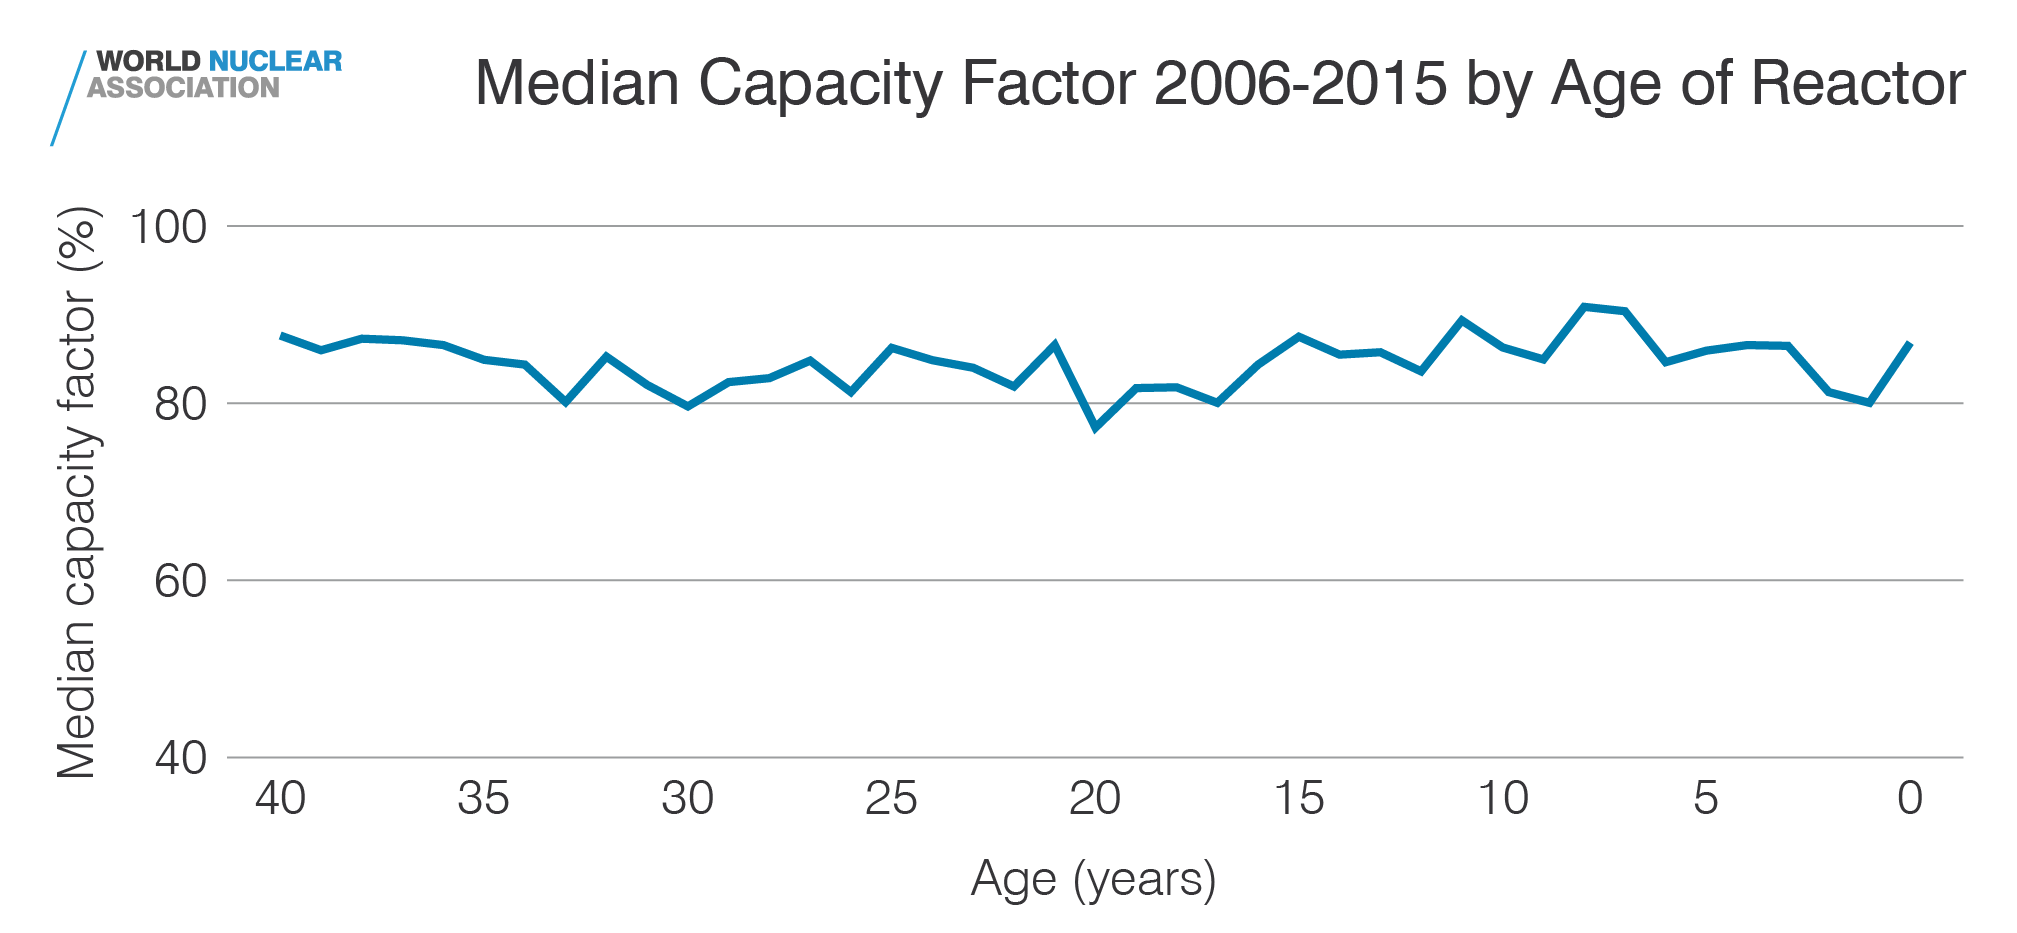 Median capacity factor 2006-2015 by age of reactor